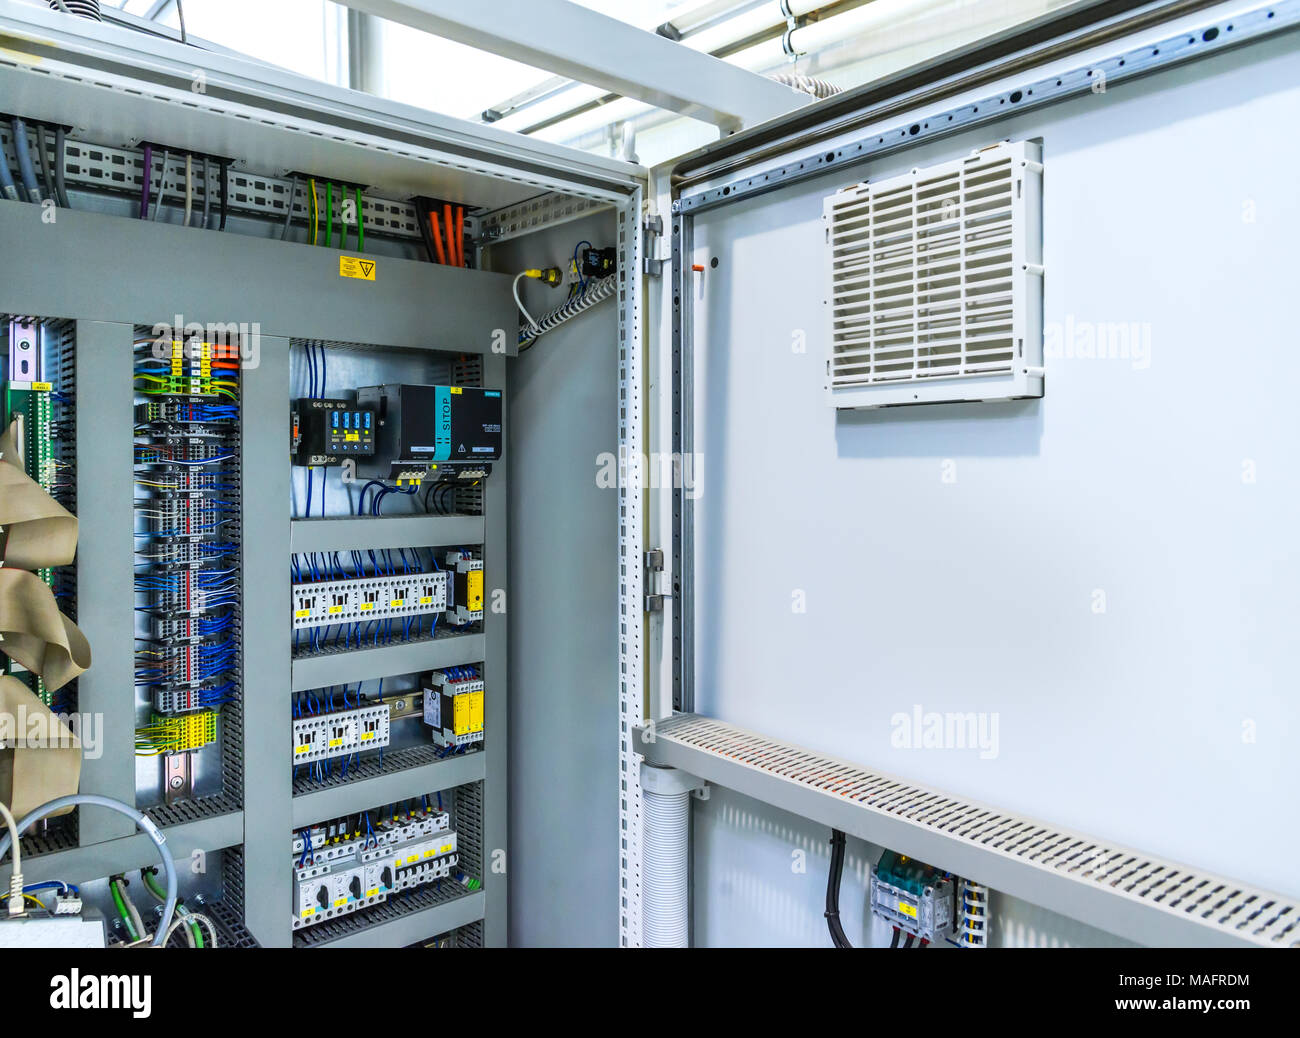 Electrical Distribution Board Stock Photos & Electrical Distribution ...